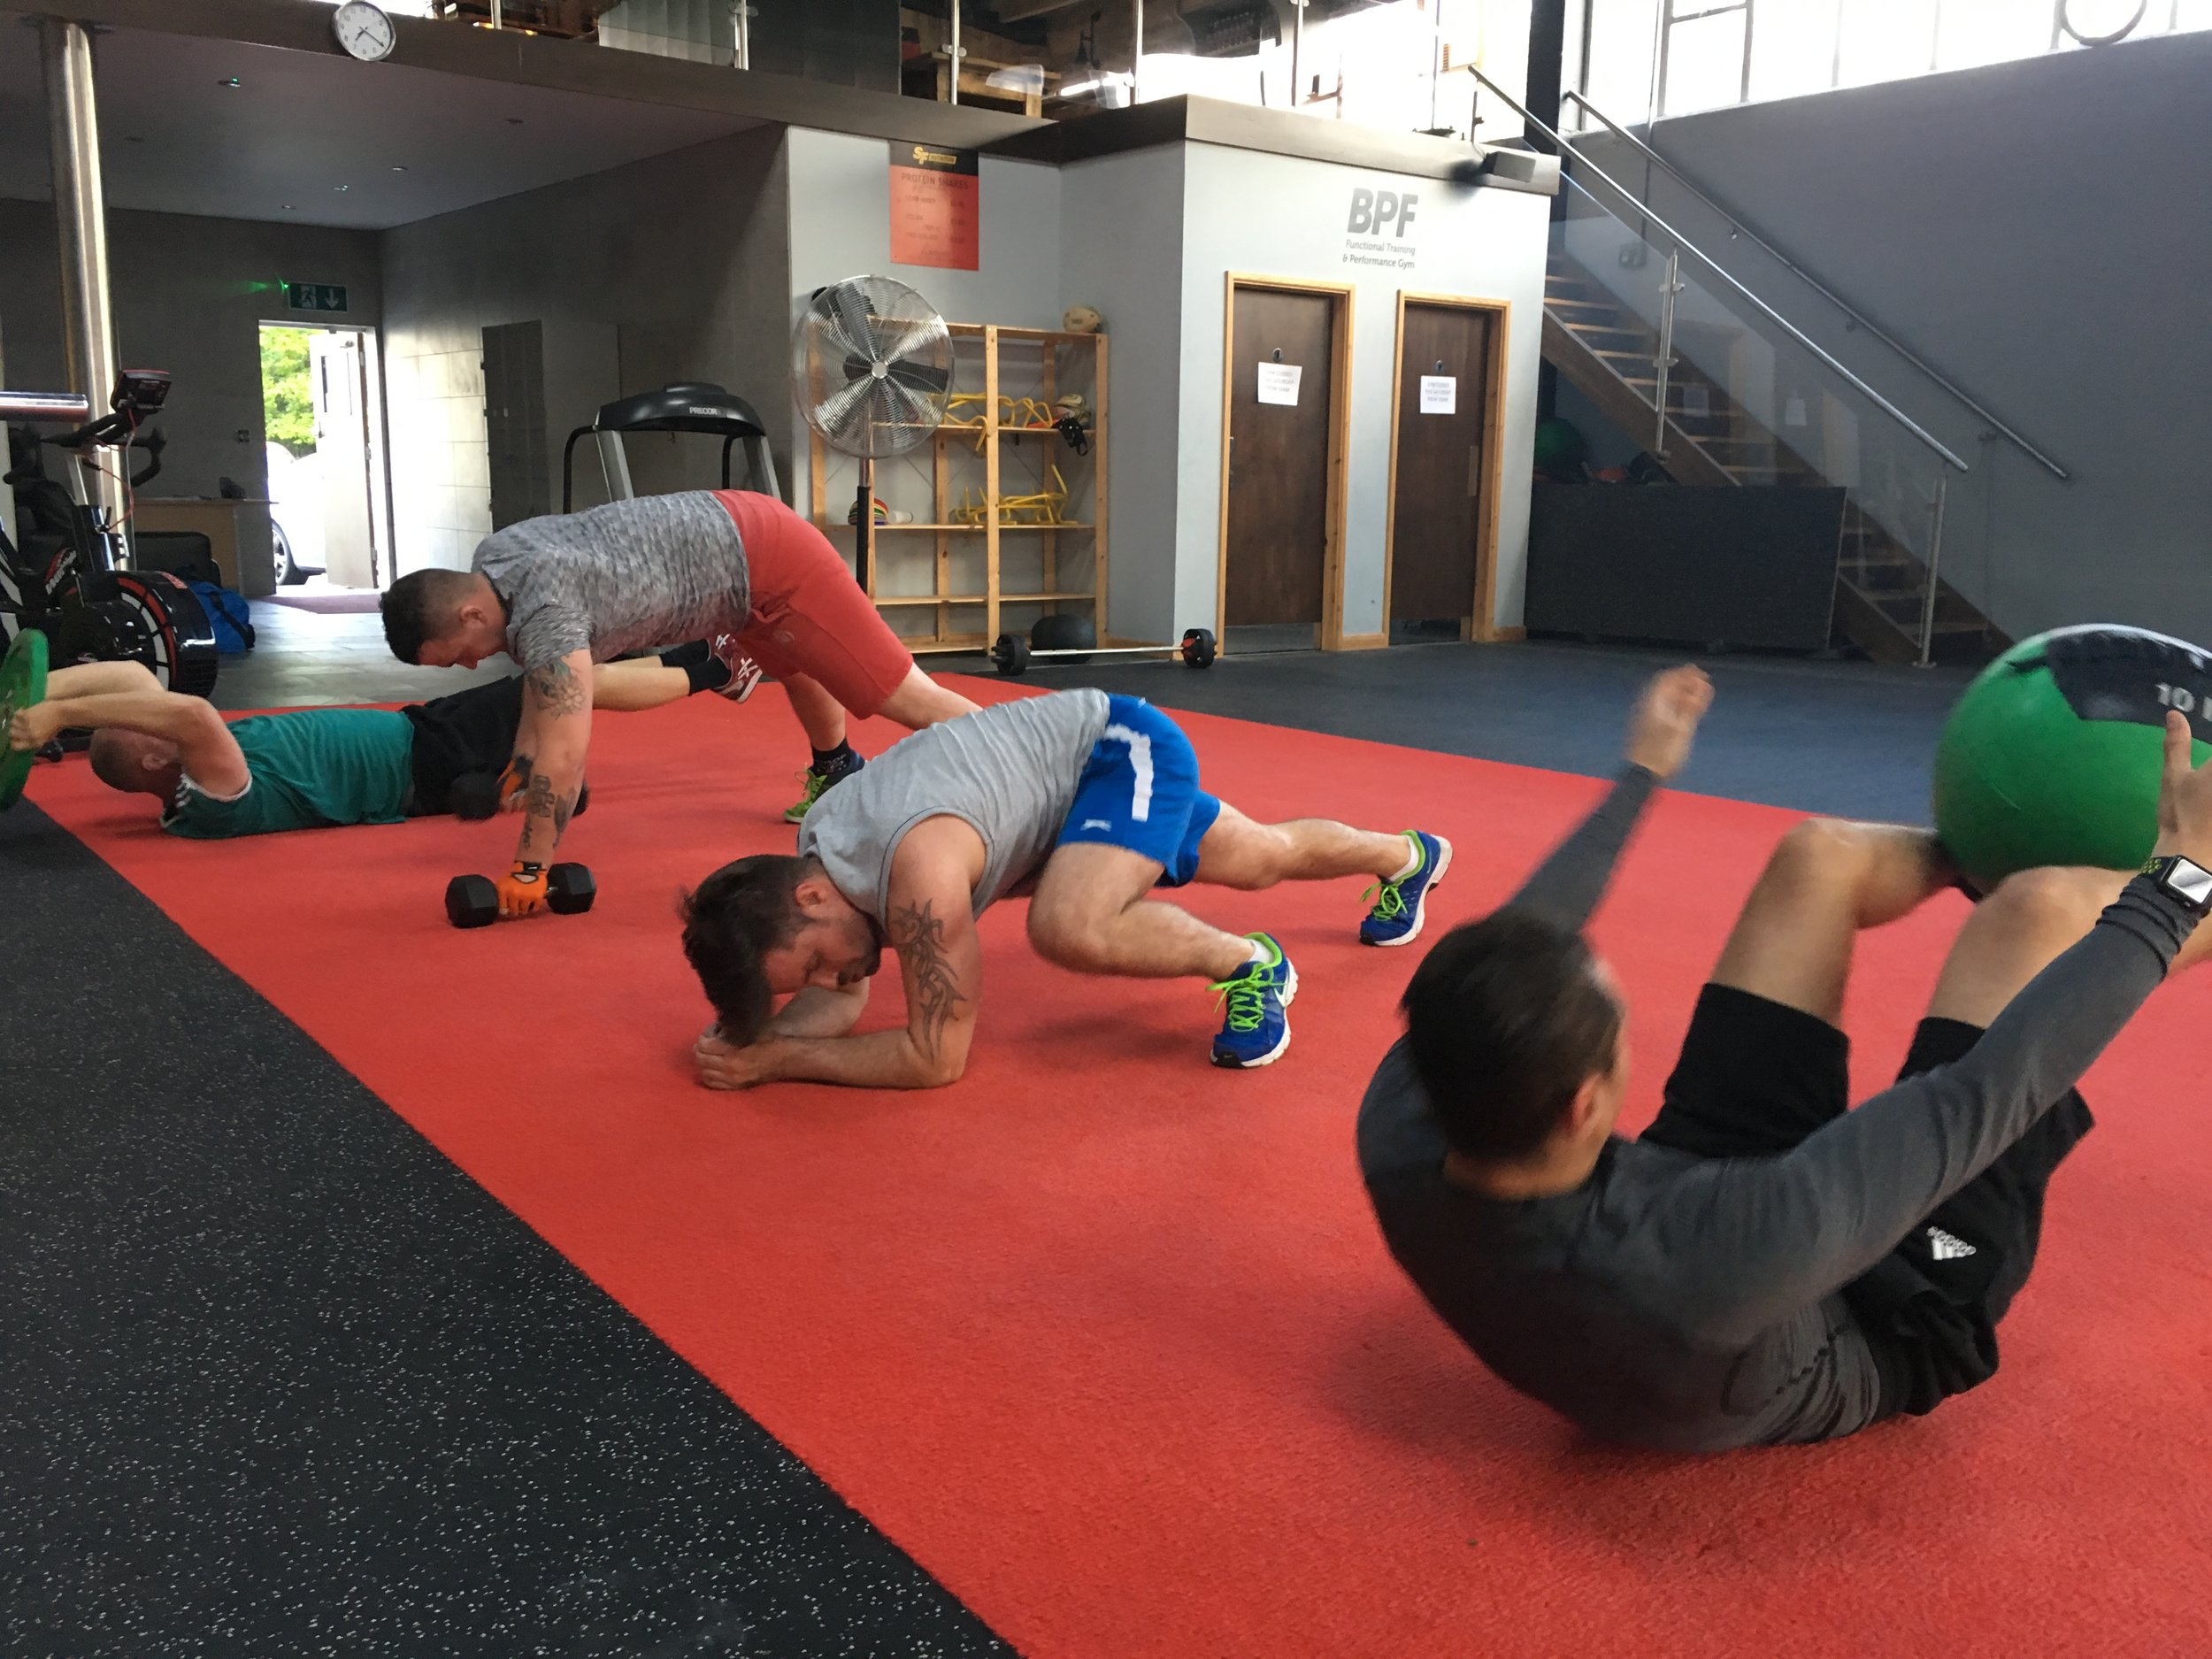 Be part of an exclusive community. - You also have access to our exclusive fitness suite, training with other like minded individuals and online community where you can communicate with fellow members.